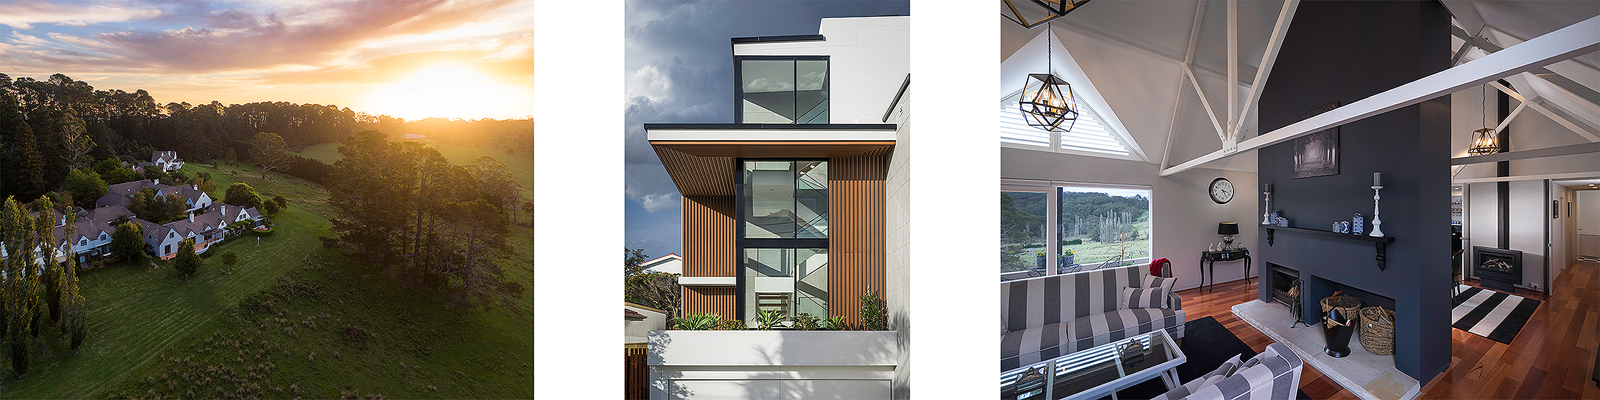 residential-property-development-photographic-services-sydney-australia-luke-zeme